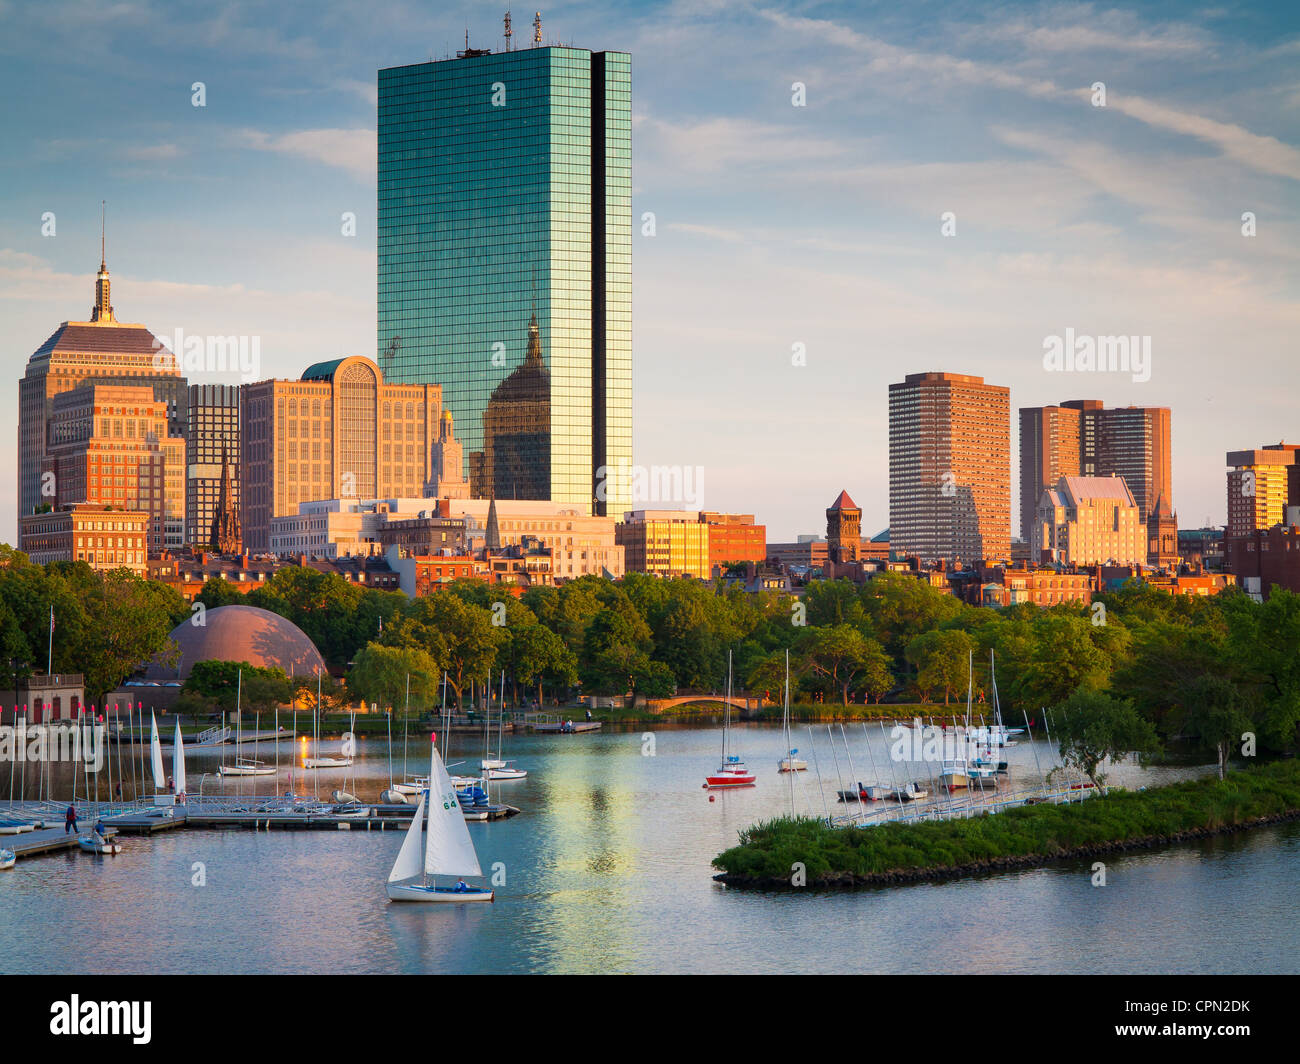 Boston et la Charles River comme vu à partir de la Mairie. Photo Stock